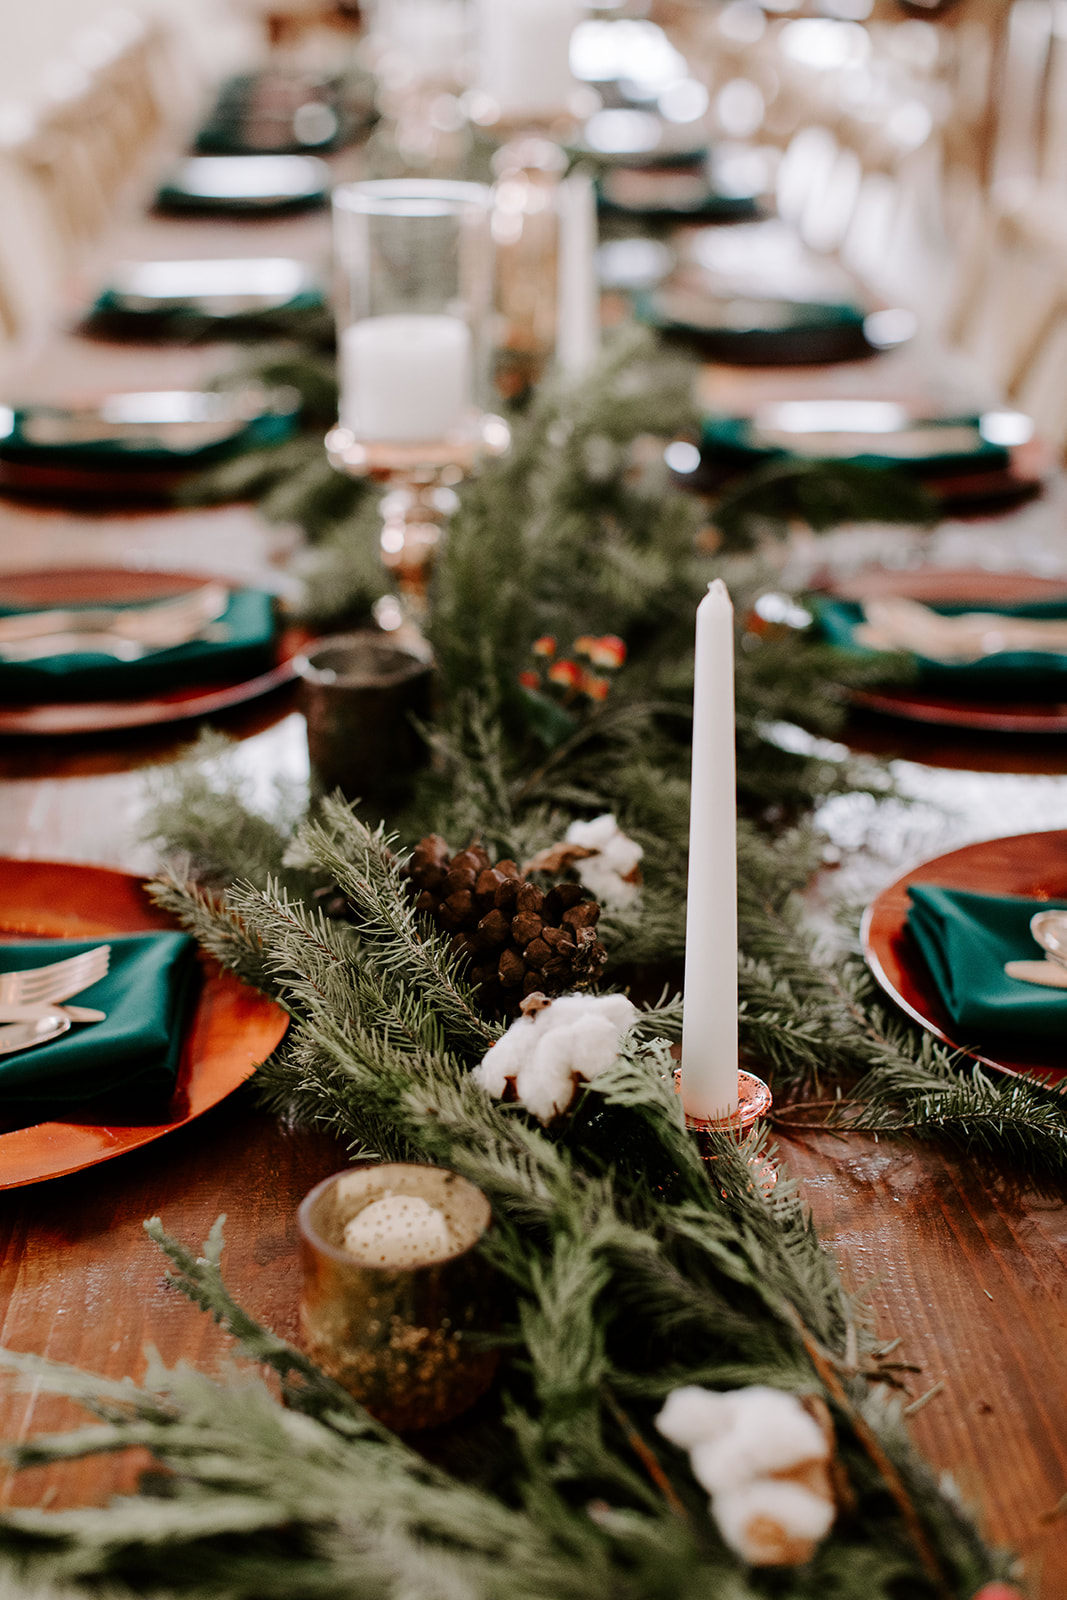 Greenery Wedding Table Runner: Romantic Winter Wedding at The Grand Ivory